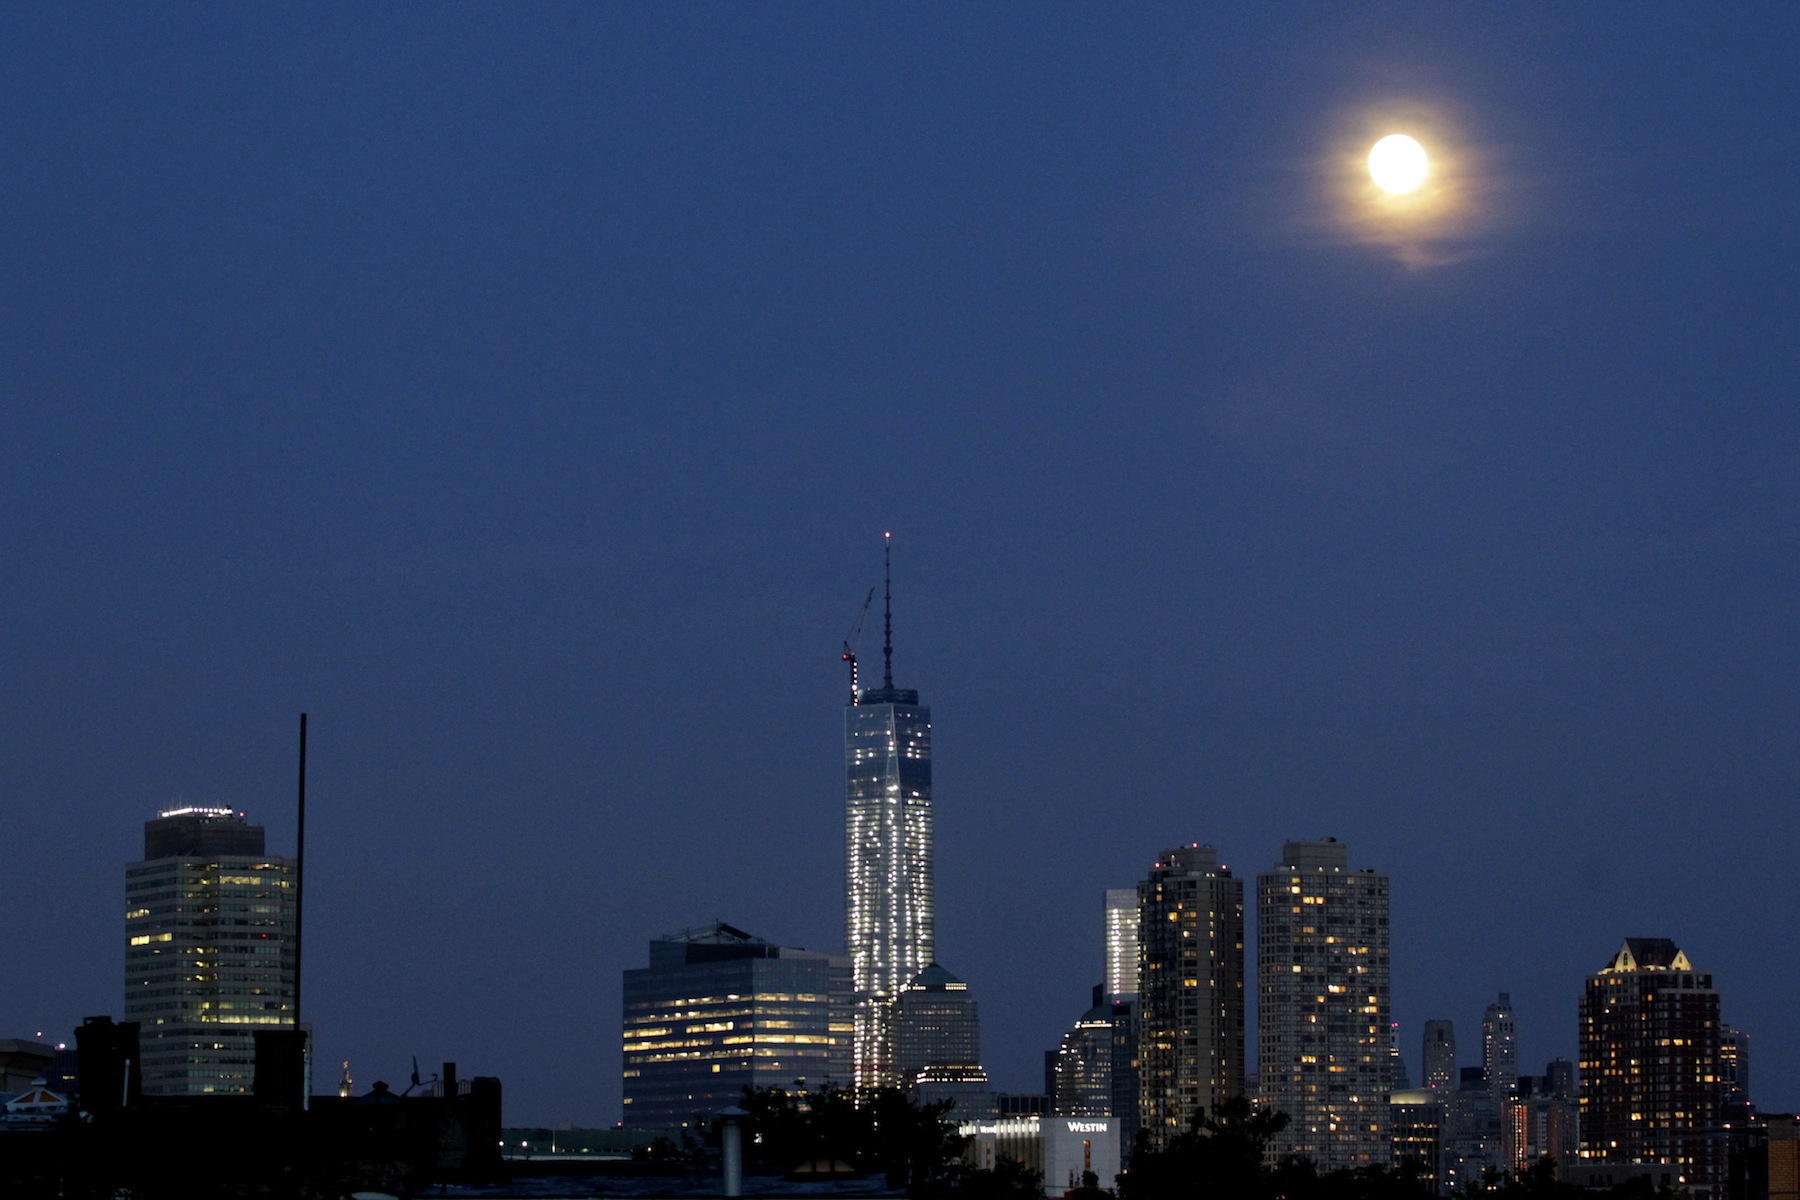 The nearly completed One World Trade Center in New York City.